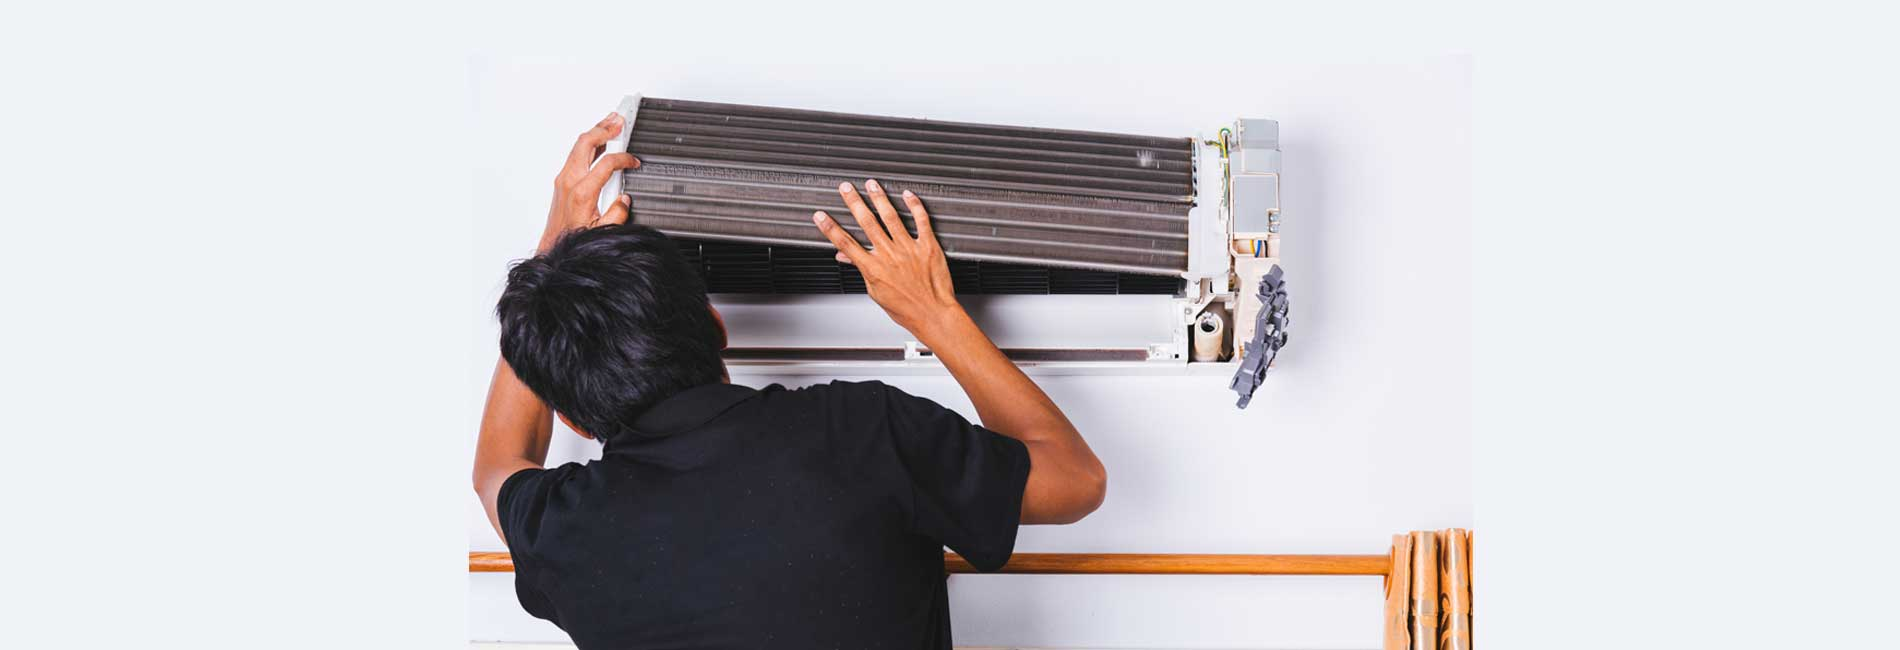 Samsung Split AC Uninstallation in Vyasarpadi